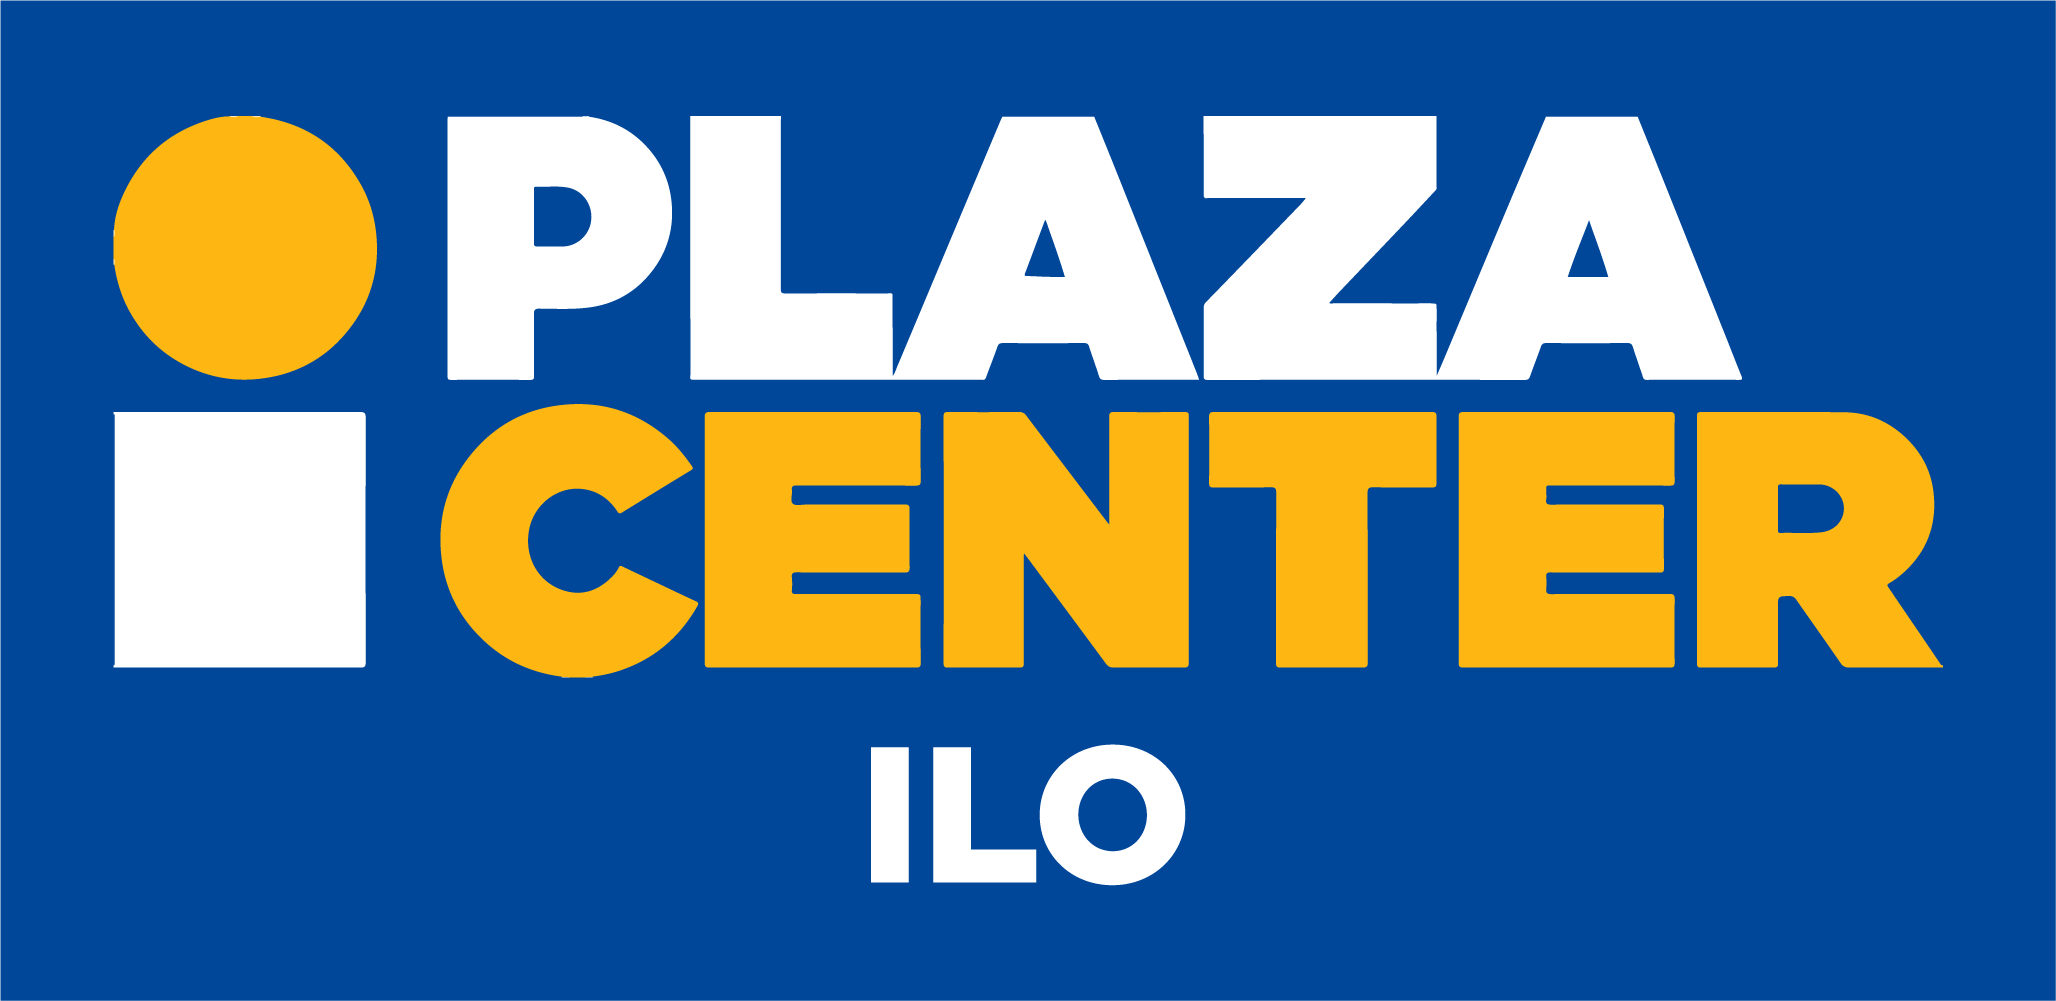 Plaza Center Ilo